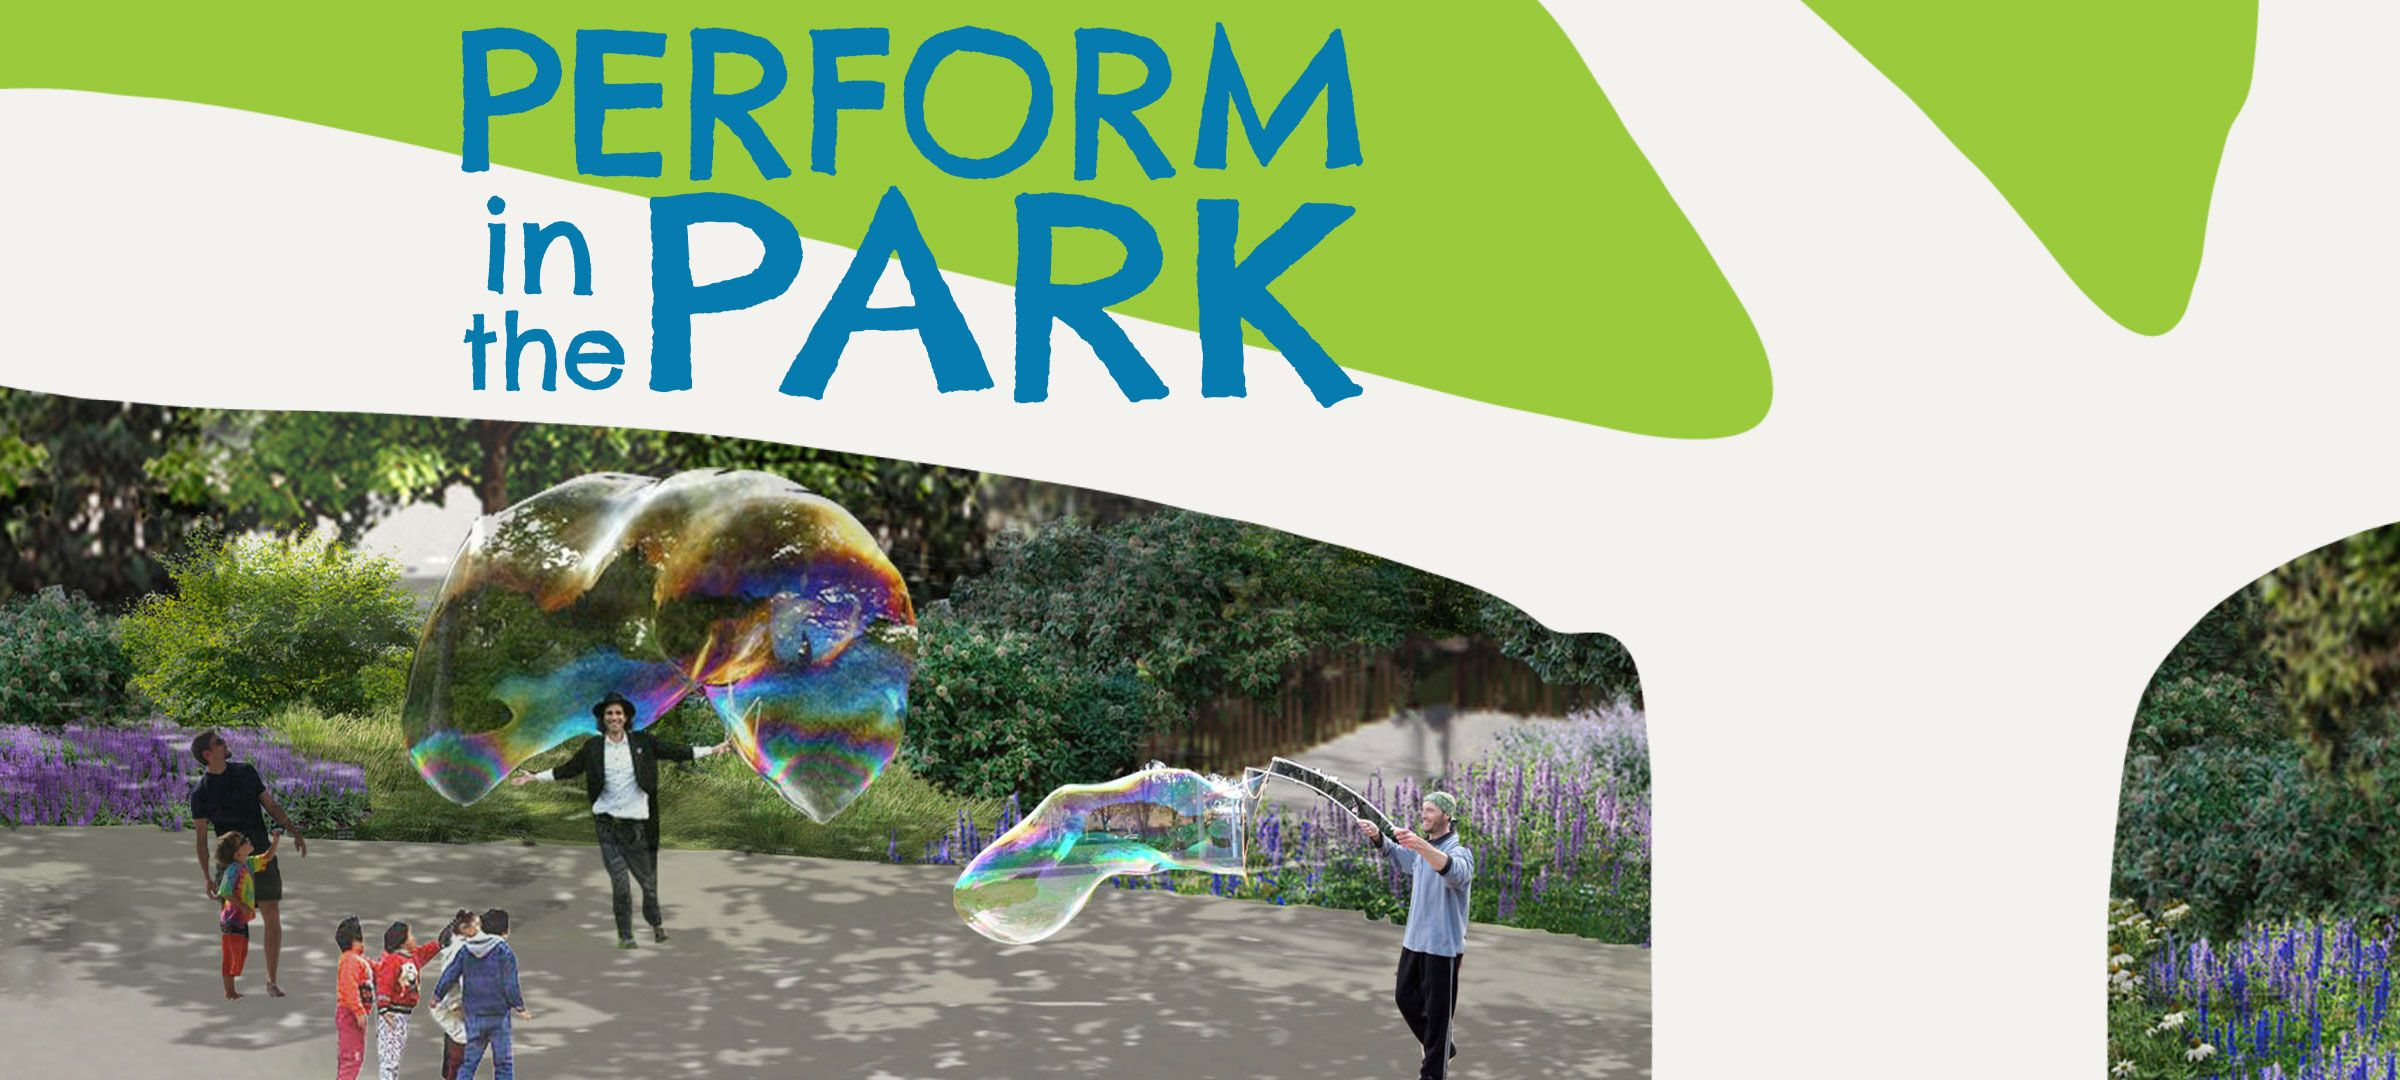 Two men producing large bubbles with bubble wands in front of a group of people in a park. The title, 'Perform in the Park' appears in the graphic over an abstract shape of a tree.